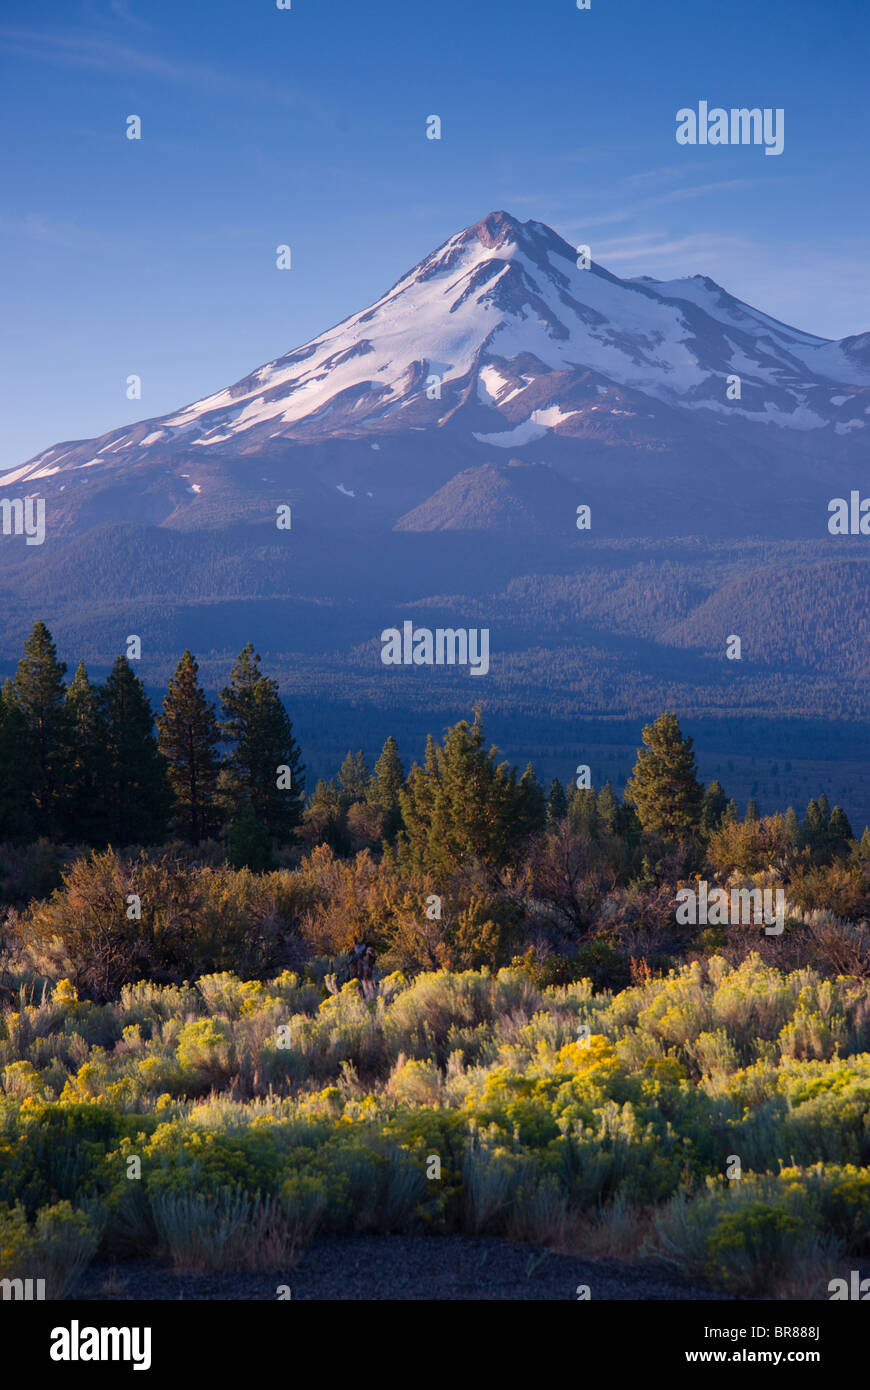 Mount Shasta California part of the Cascade Mountain Range - Stock Image